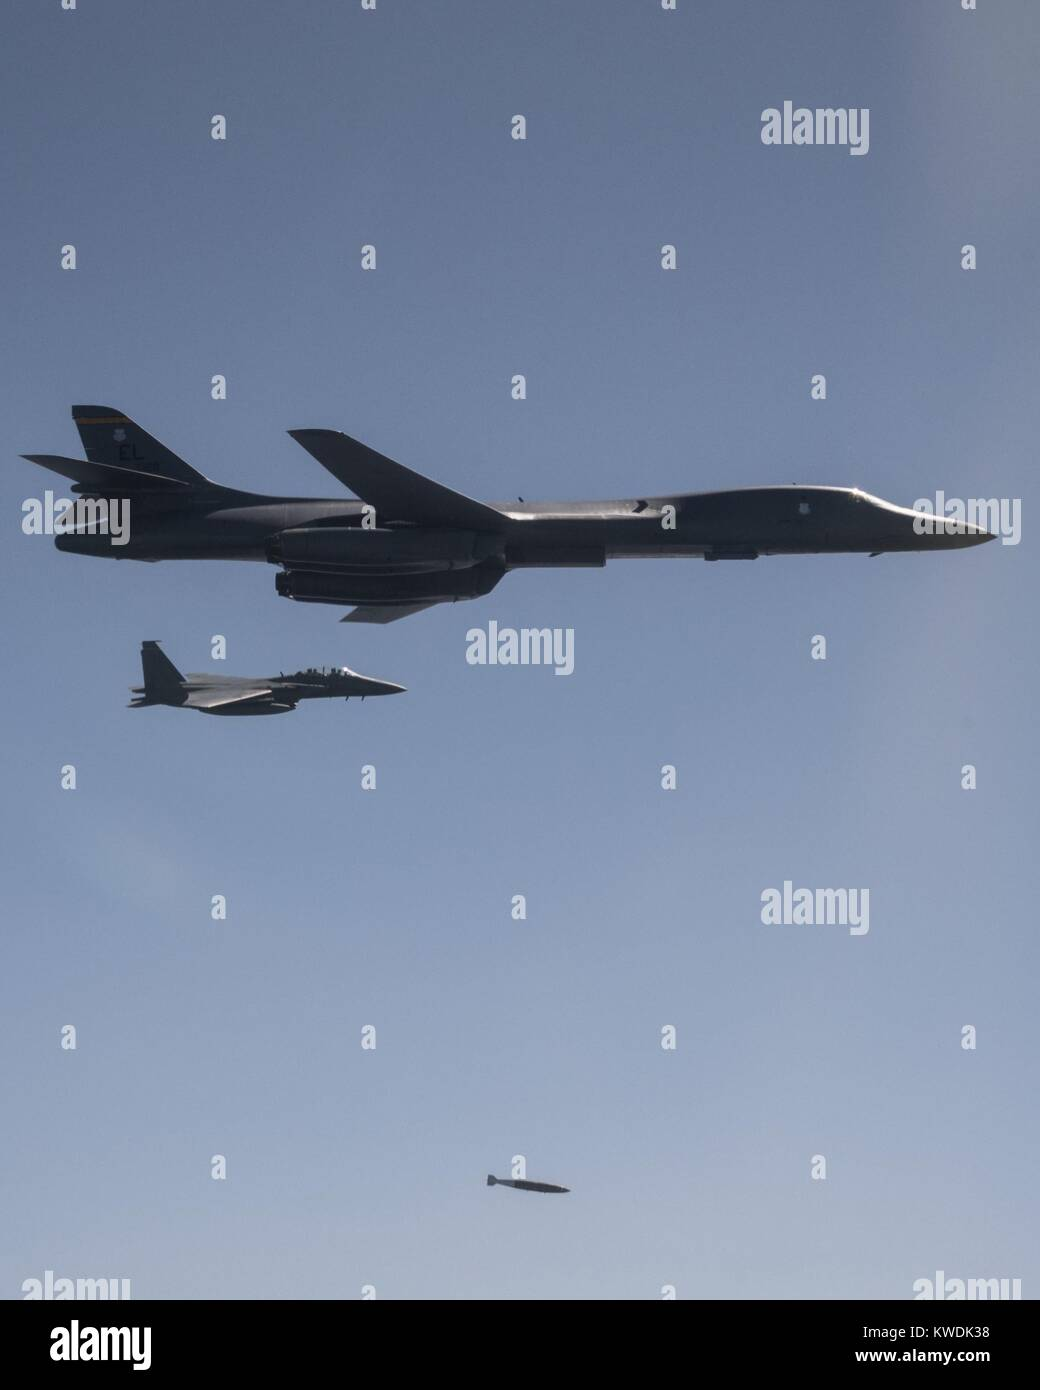 A US Air Force B-1B Lancer drops a 2,000 pound live munition at Pilsung Training Range, South Korea. Flanked by Stock Photo